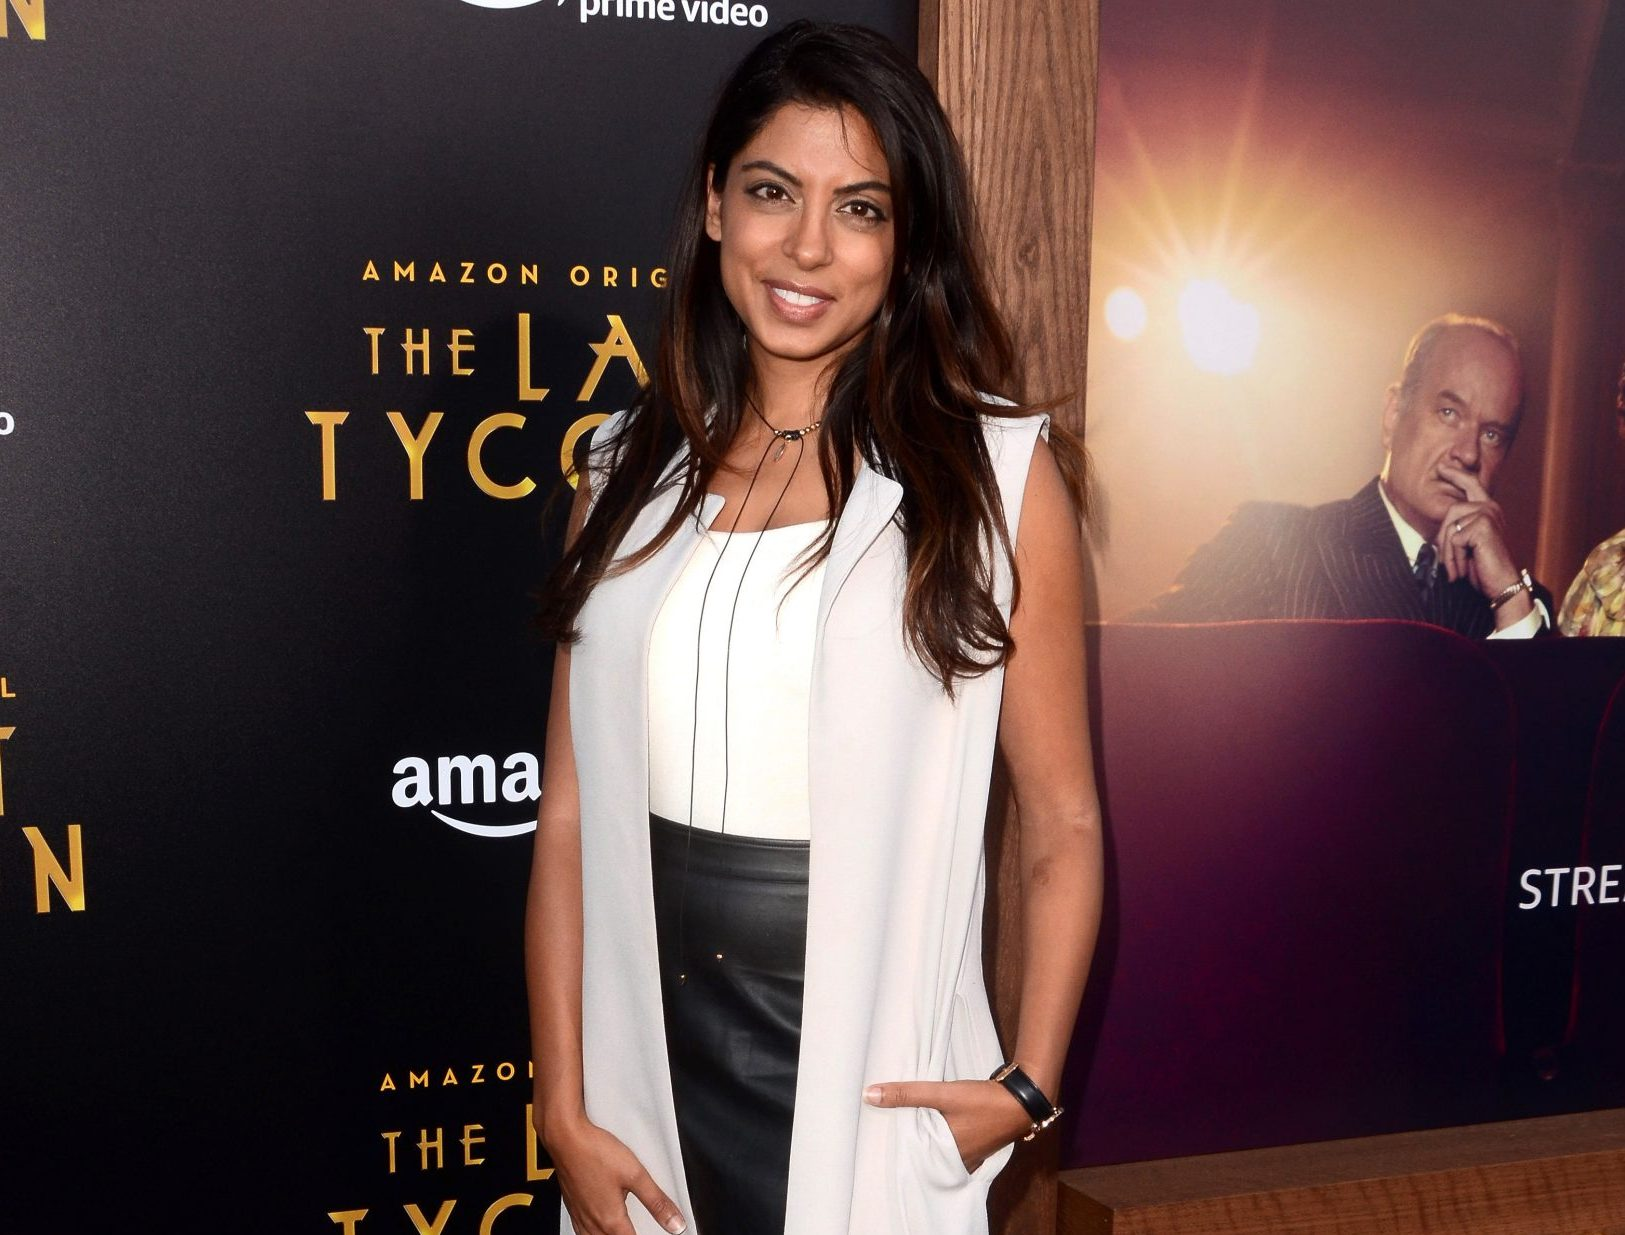 Aliya Jasmine smiles at a red carpet event. She has long, dark brown hair that sits over her shoulders. She wears a sleeveless white top with a light-coloured vest on top and a black skirt.